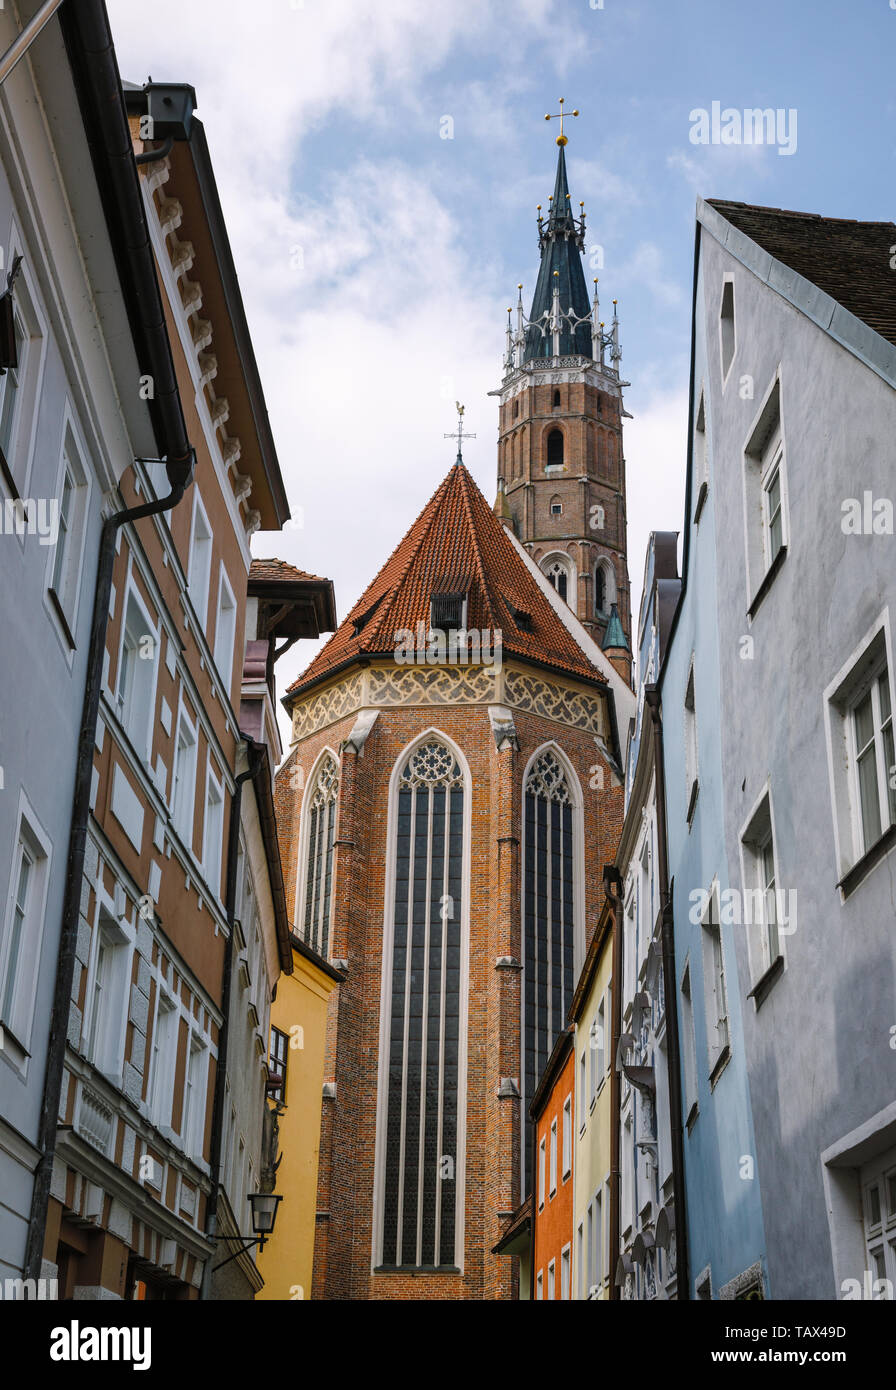 Landshut Old town with the world's tallest Brick Gothic tower of Church of St. Martin (Martinskirche) seen in background, Bavaria, Germany, Europe. - Stock Image